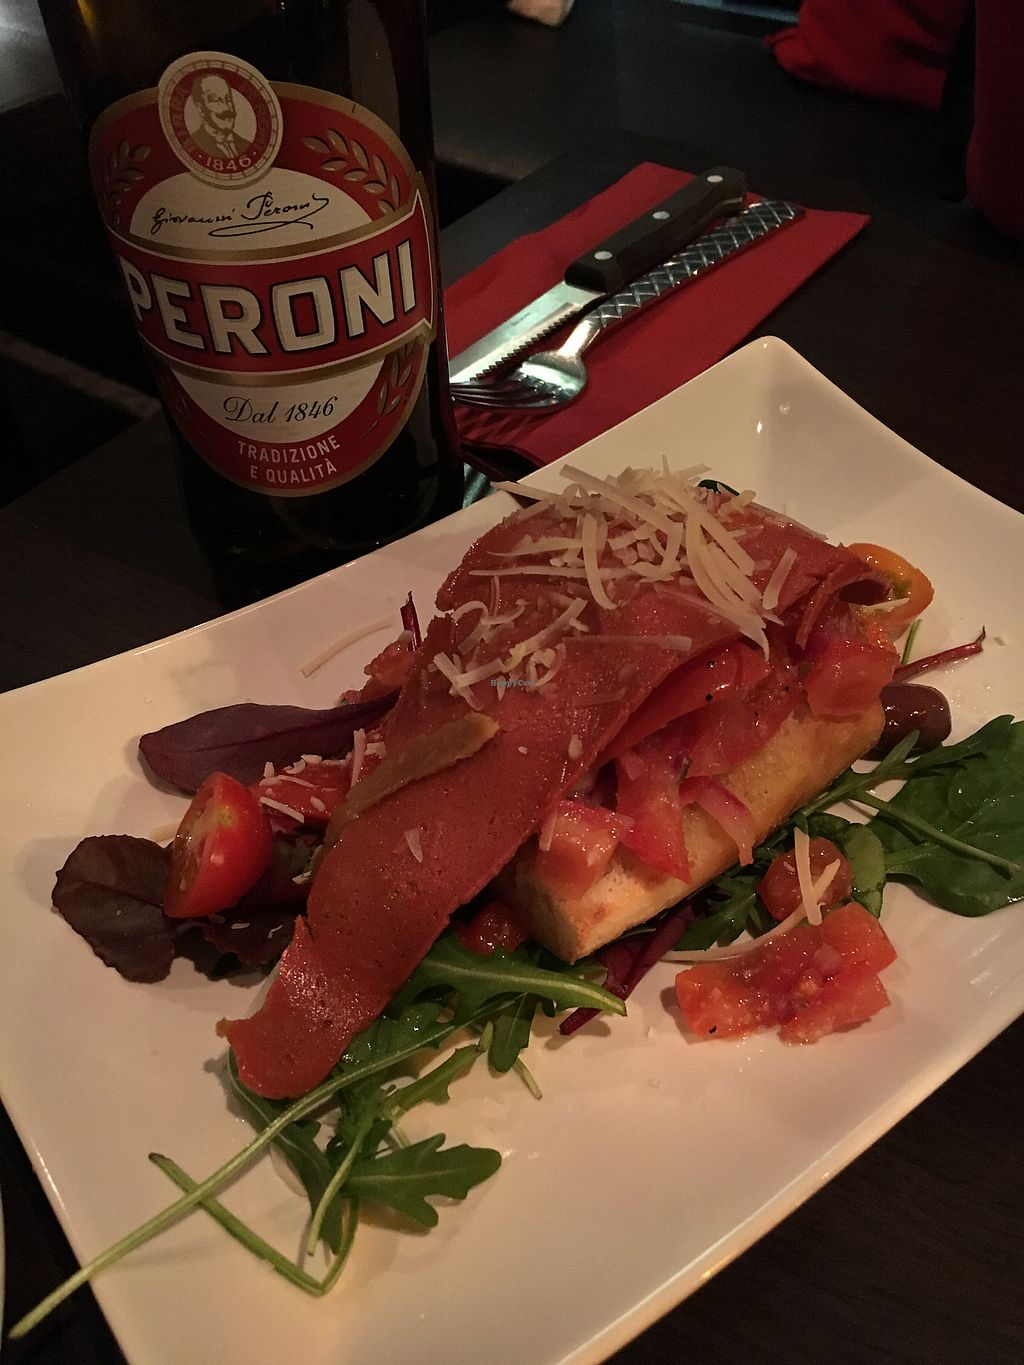 """Photo of Feca  by <a href=""""/members/profile/SeitanSeitanSeitan"""">SeitanSeitanSeitan</a> <br/>Vegan bruschetta with """"bacon"""" <br/> April 14, 2018  - <a href='/contact/abuse/image/69651/385622'>Report</a>"""